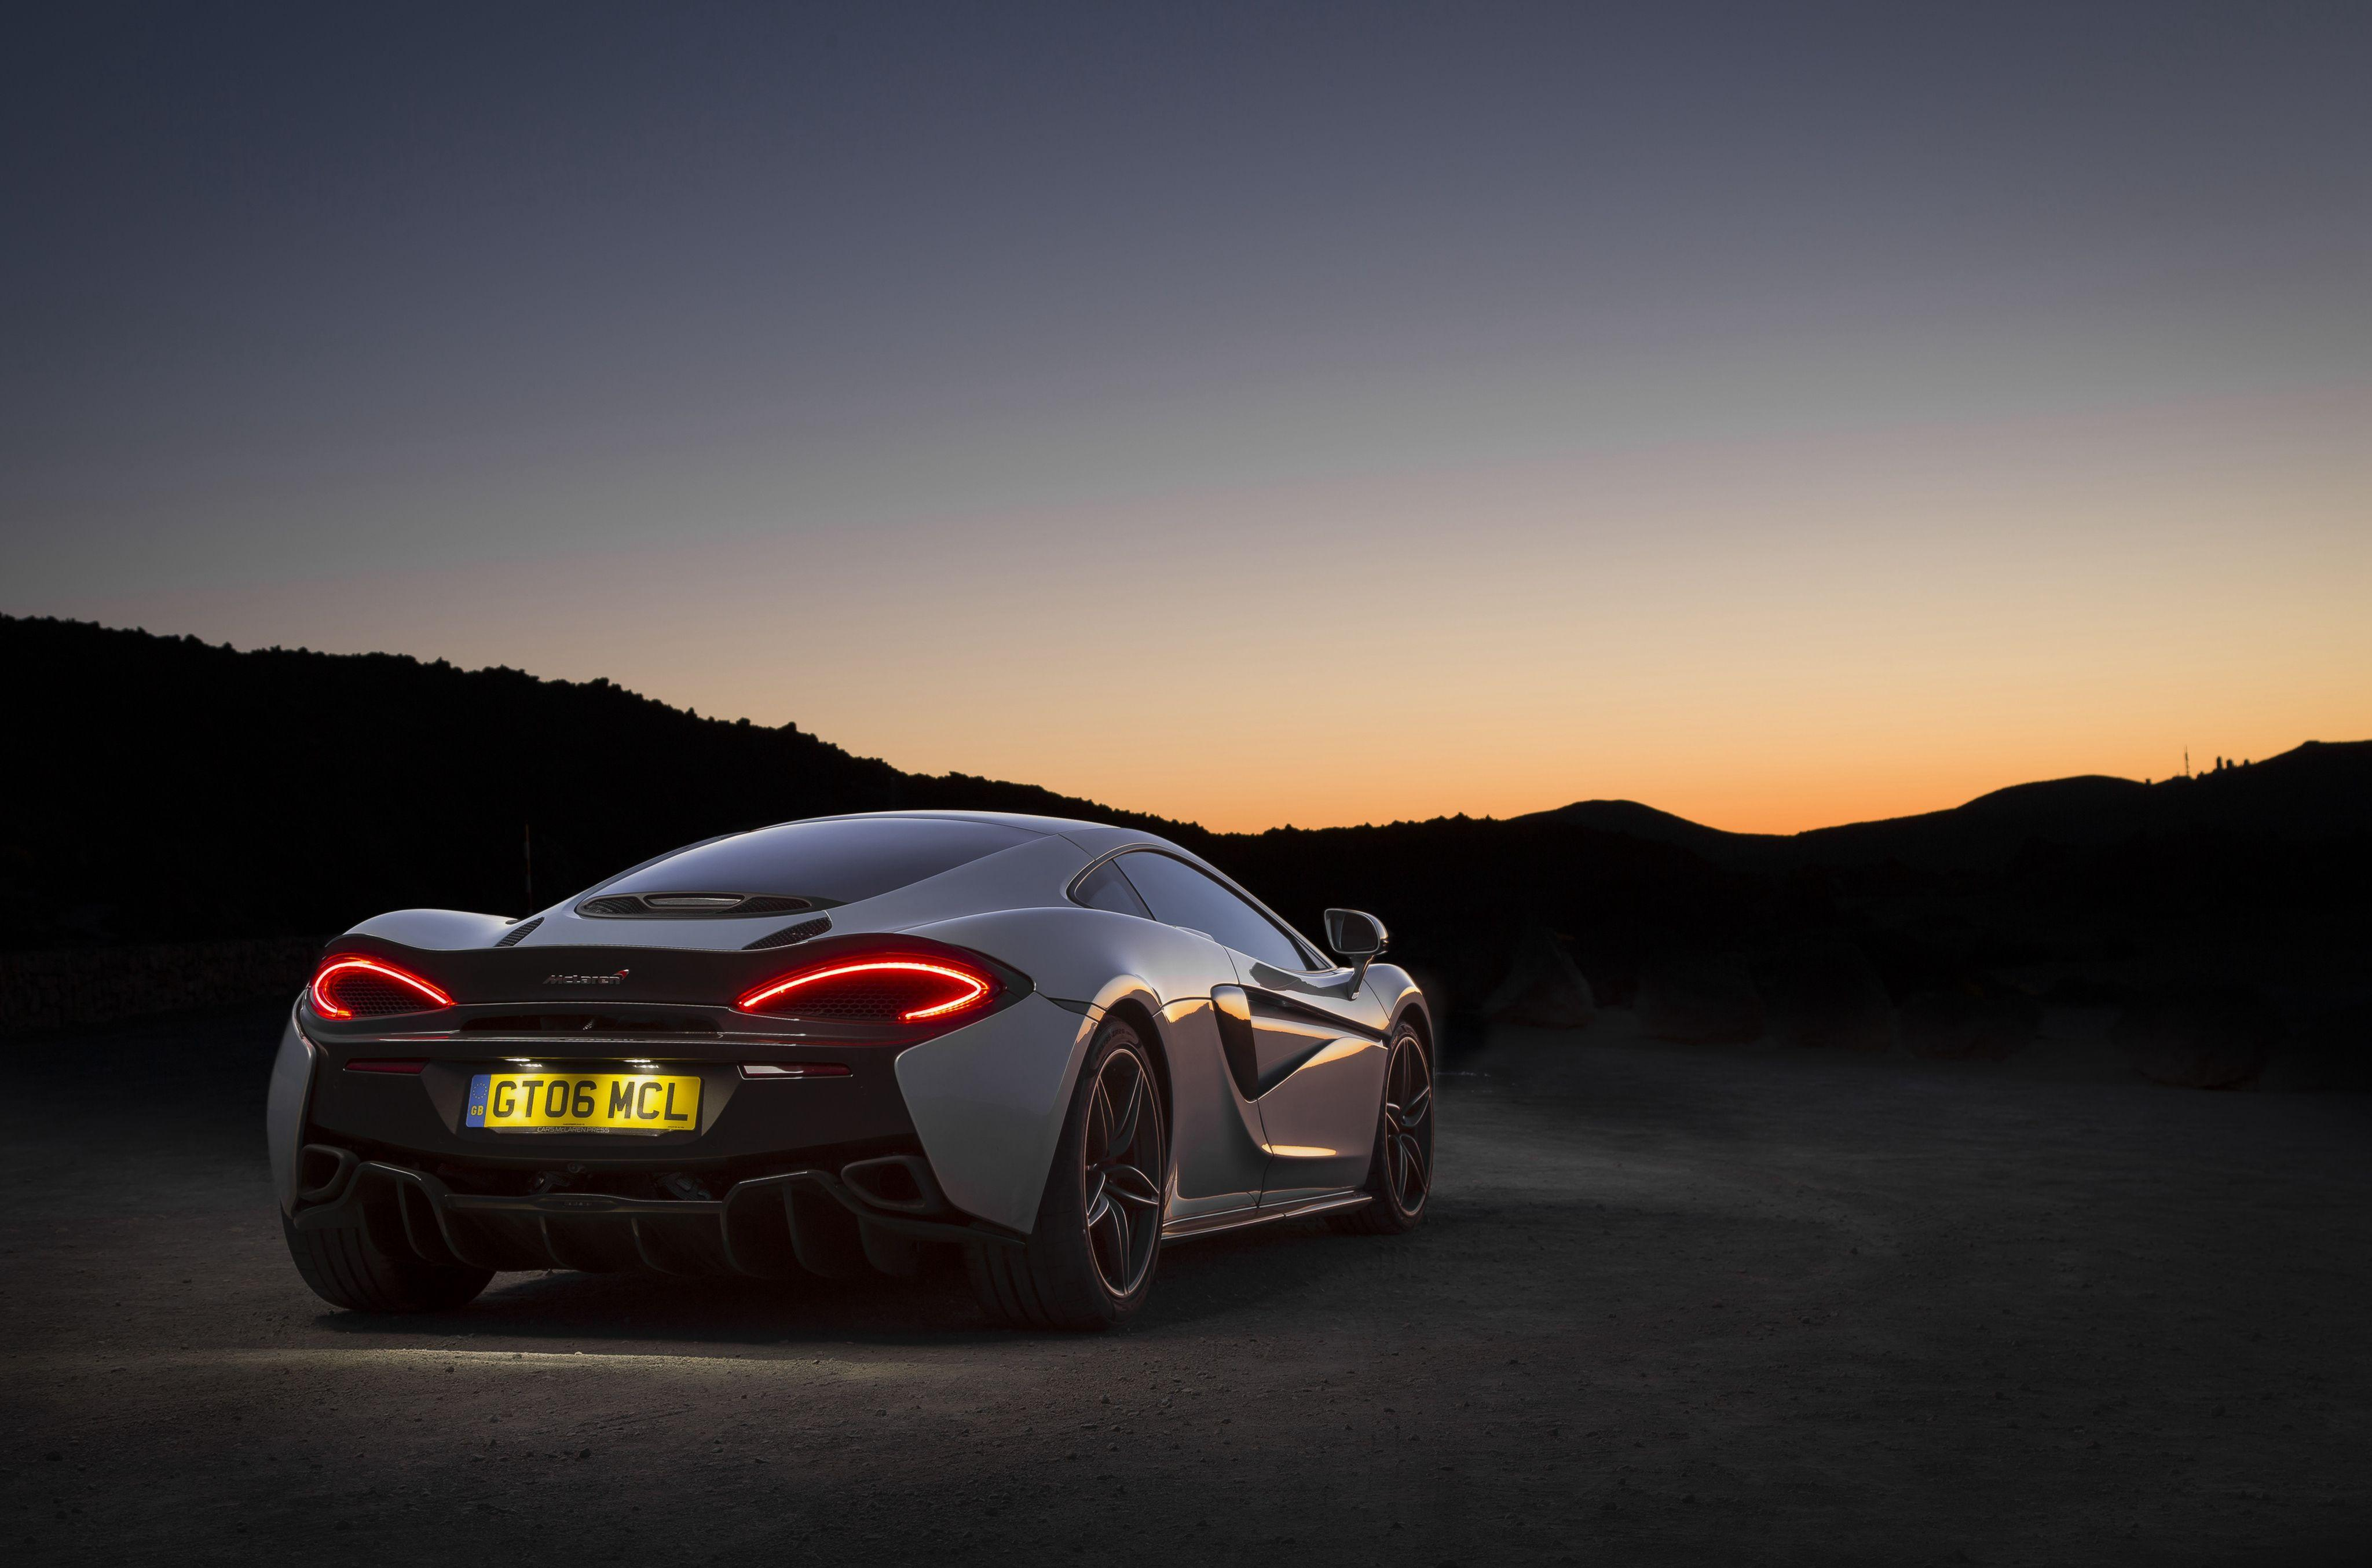 Picture McLaren 570GT Night Back view automobile 4096x2708